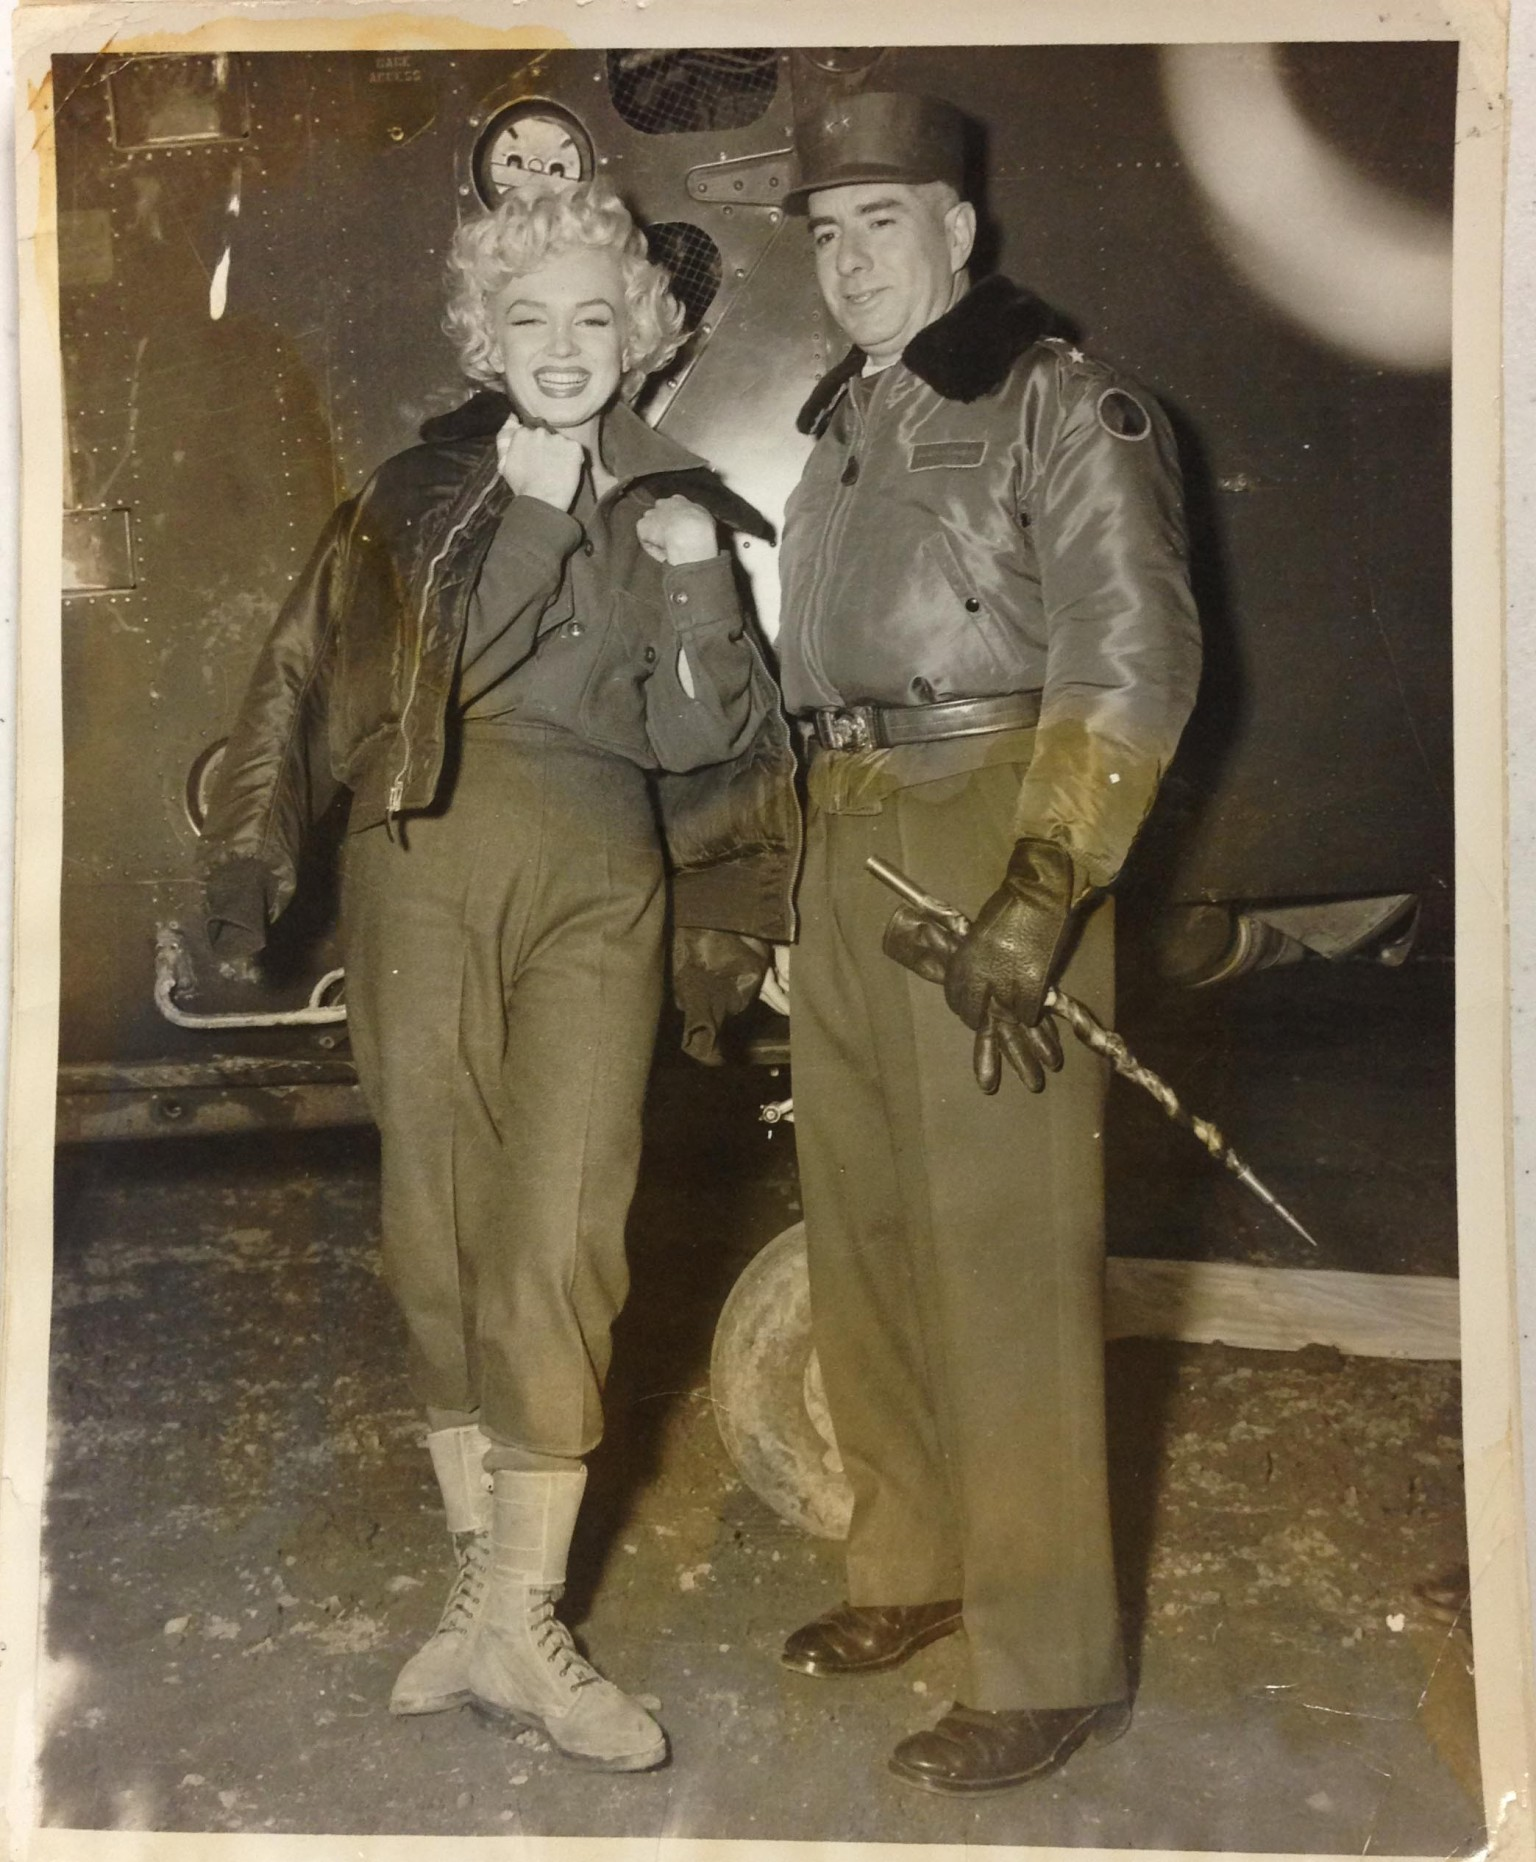 marilyn monroe korea death before never seen after she years troops pics was 1954 factory working her huffpost